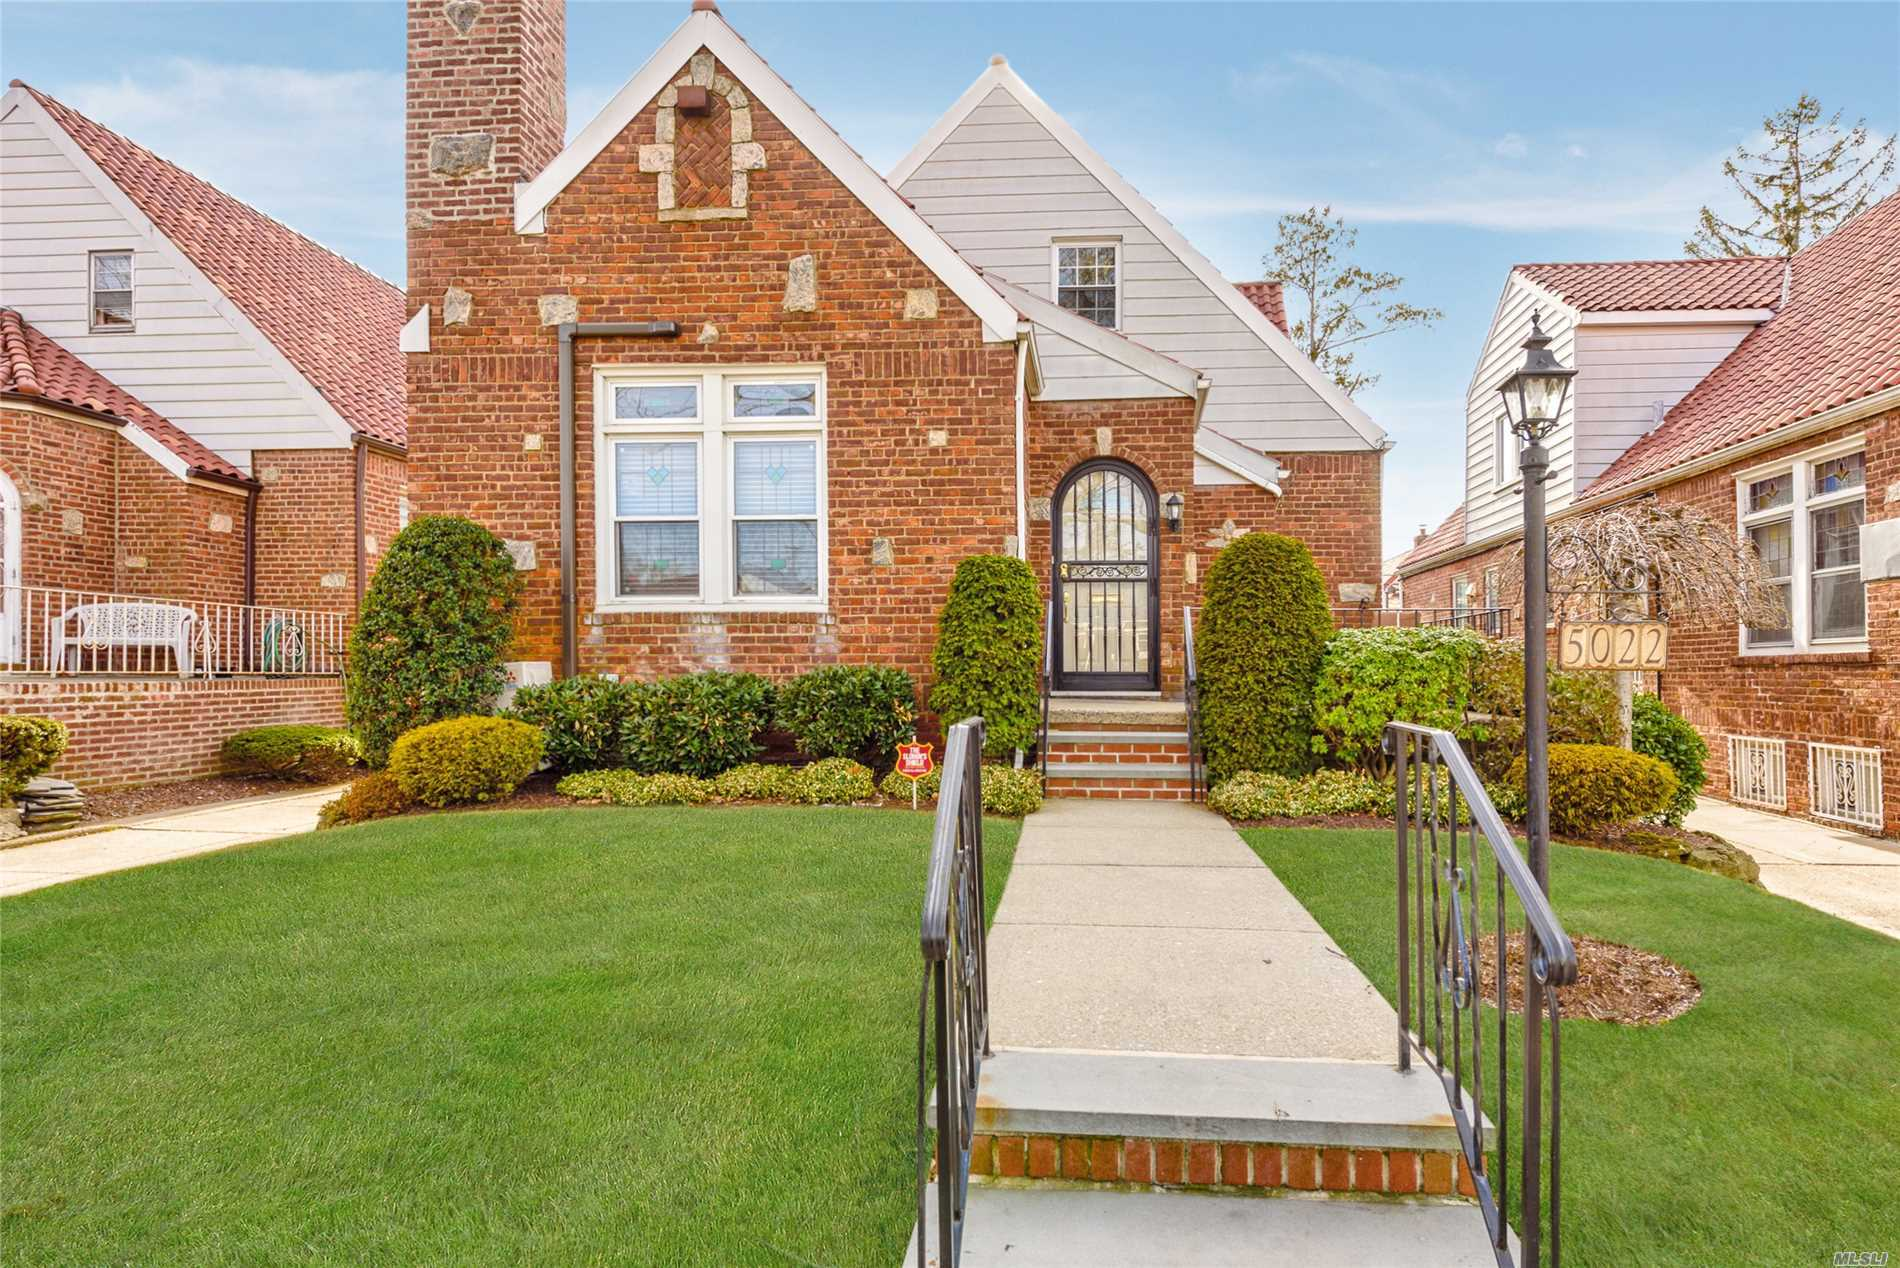 Rare brick tudor cape w/ charming details. Vaulted ceilings & wood beams in the living room w/ fireplace. Large formal diningroom. Kitchen is spacious with stainless steel appliances. Updated full BTH with two vanities. MBR is on the 1st flr. along with second BR. Up the stairs there are 3 BRs and one full BTH. Attic provides plenty of storage. The basement is expansive w/ OSE and Washer/Dryer. Pvt driveway with 1.5 garage & mature landscaping. District 26. Transportation close by.